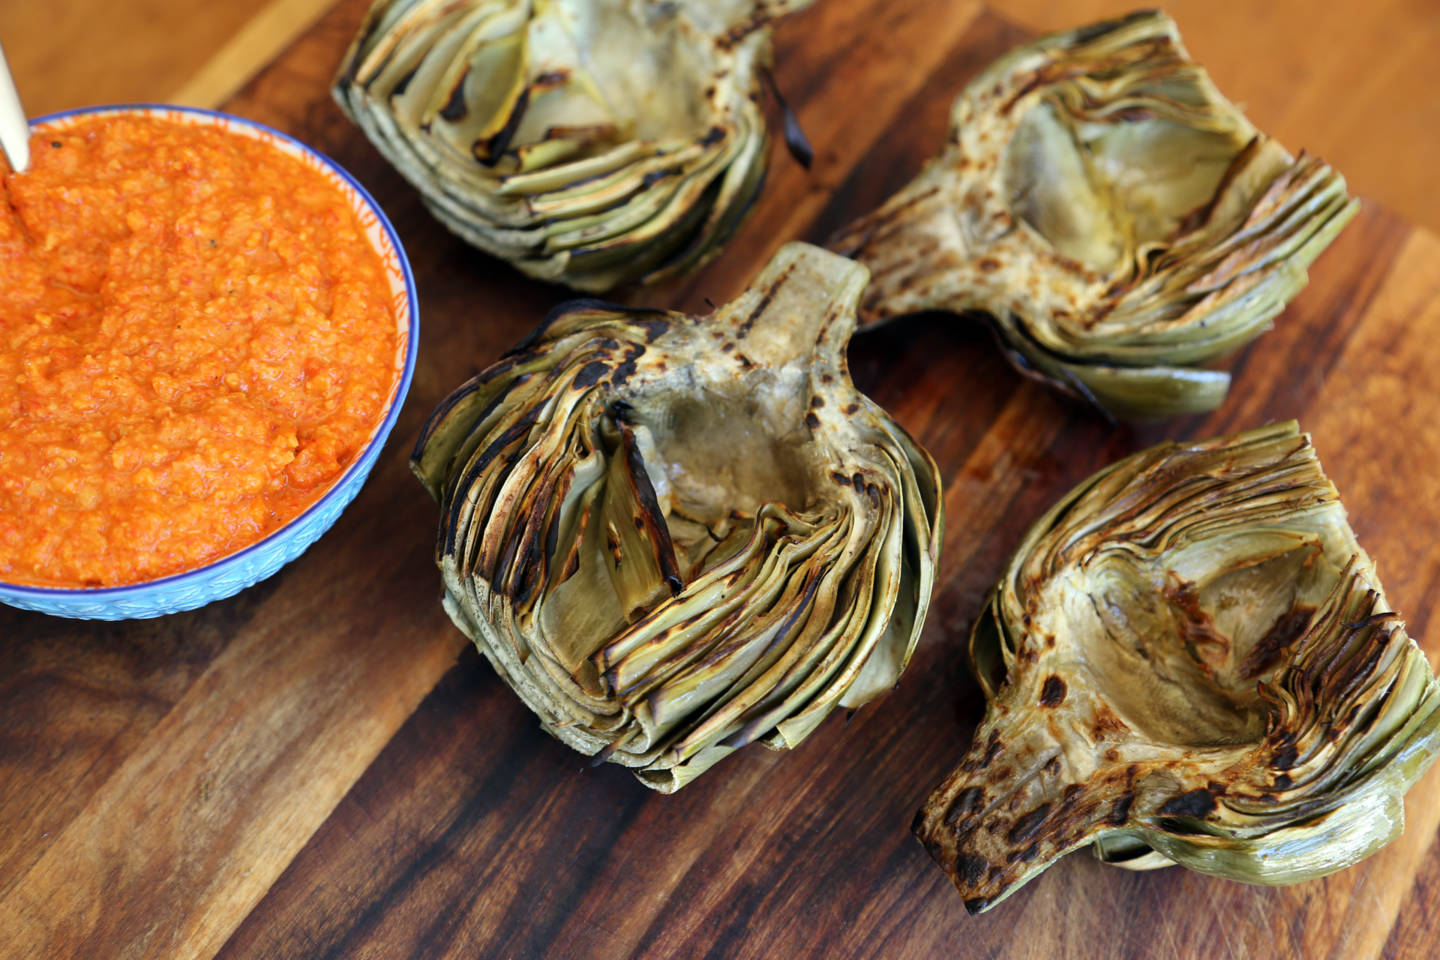 Springtime Grilled Artichokes with Romesco Sauce